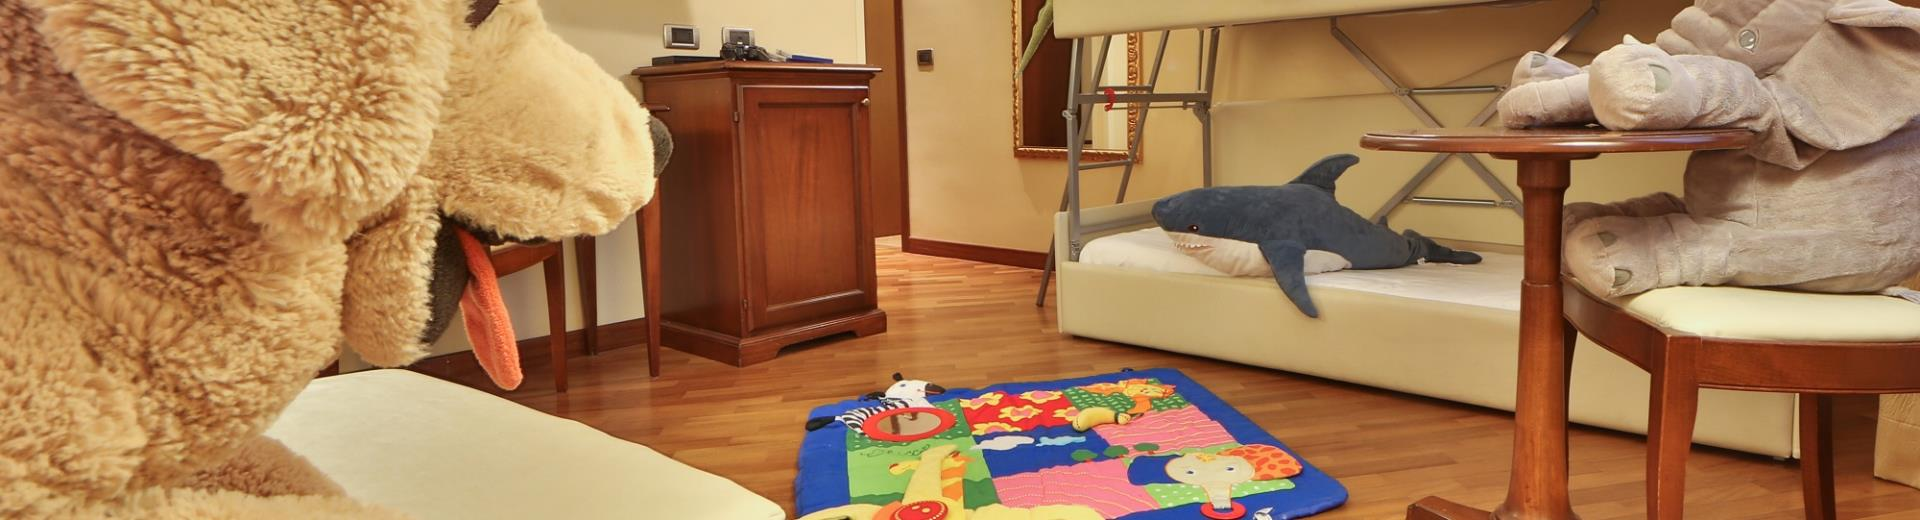 Family room suitable for families with children the Hotel Metropoli in Genoa